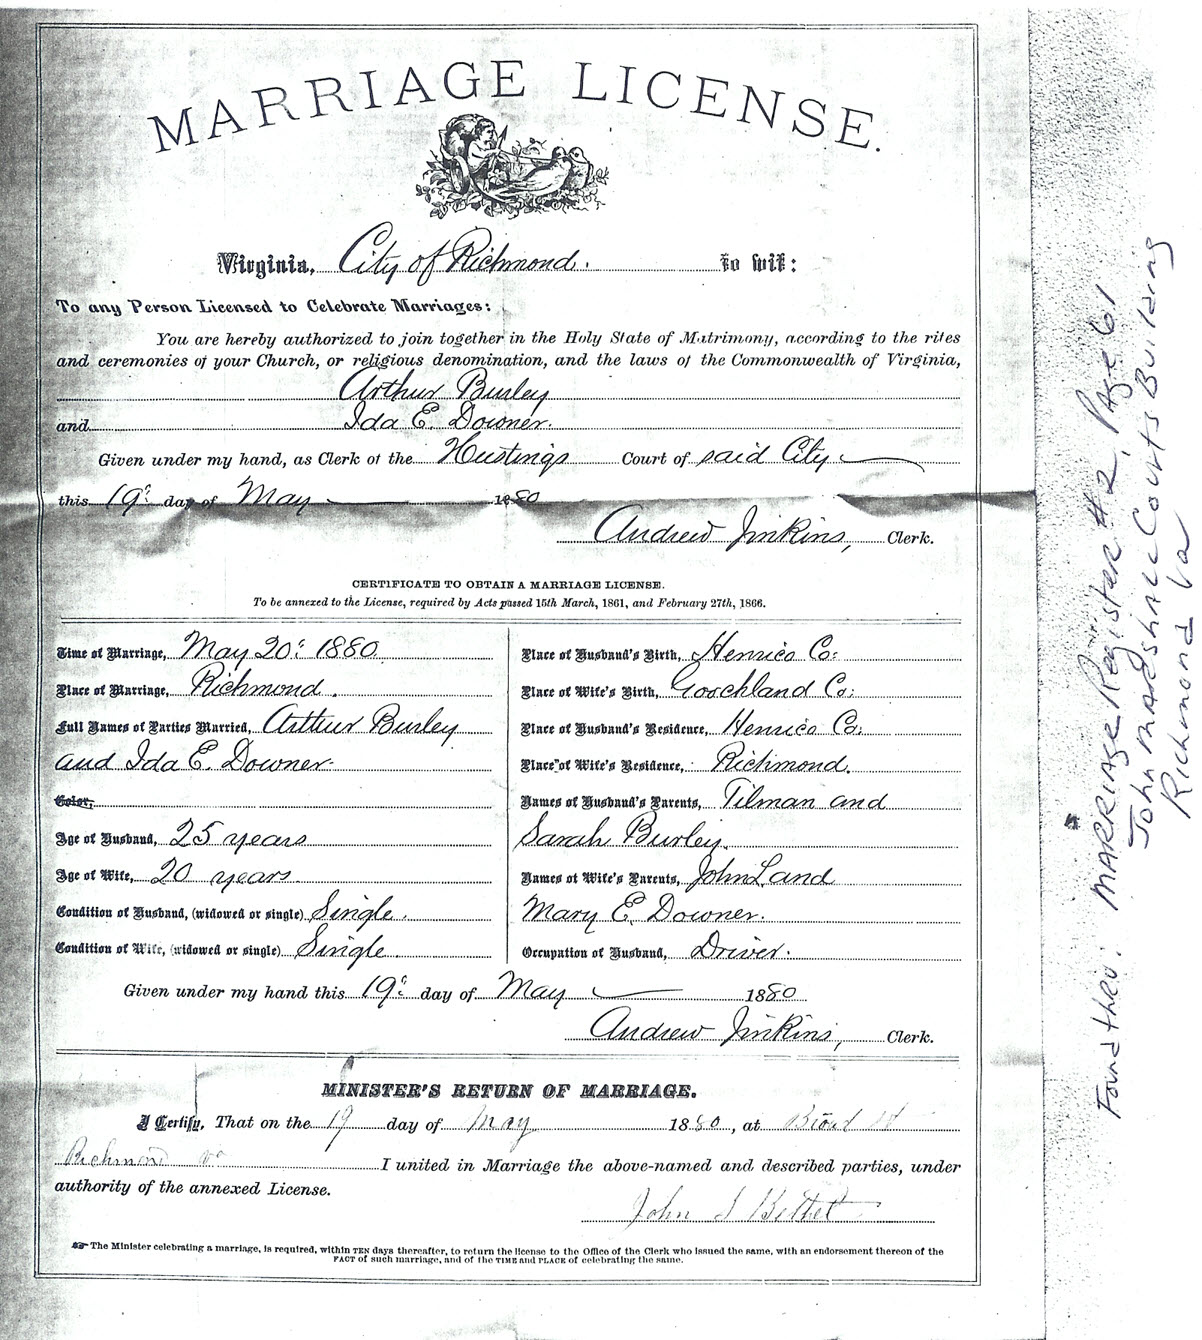 Burley Family Marriage Records